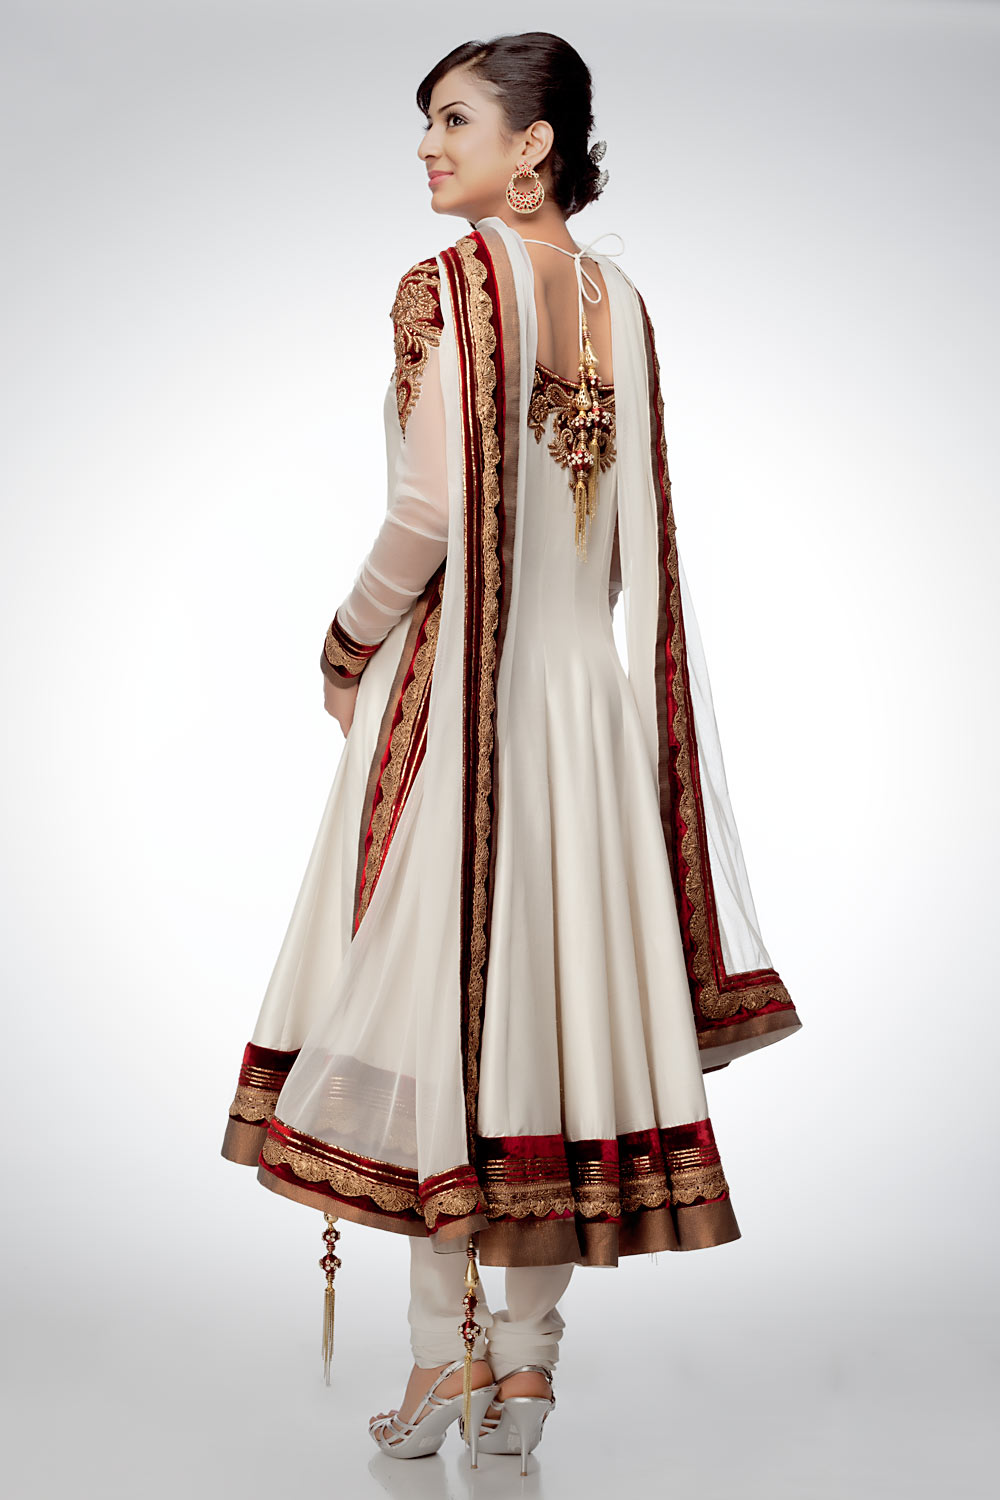 Innovative  And More For Women Style Indian Style Women S Clothing Indian